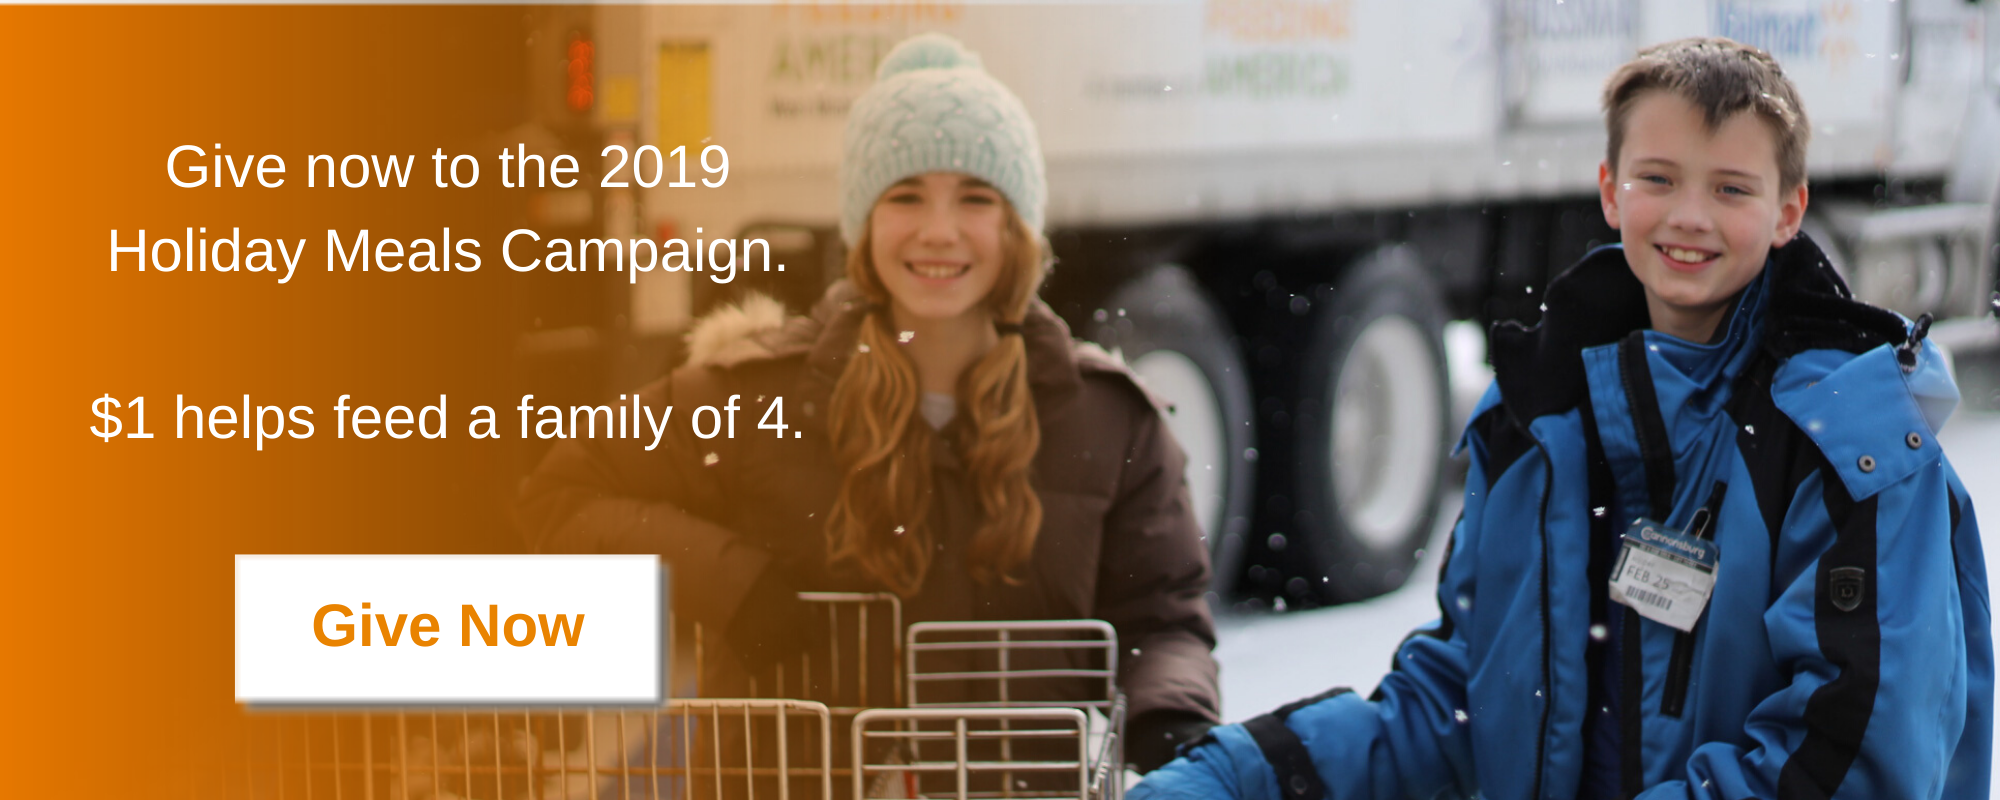 Give now to the 2019 Holiday Meals Campaign